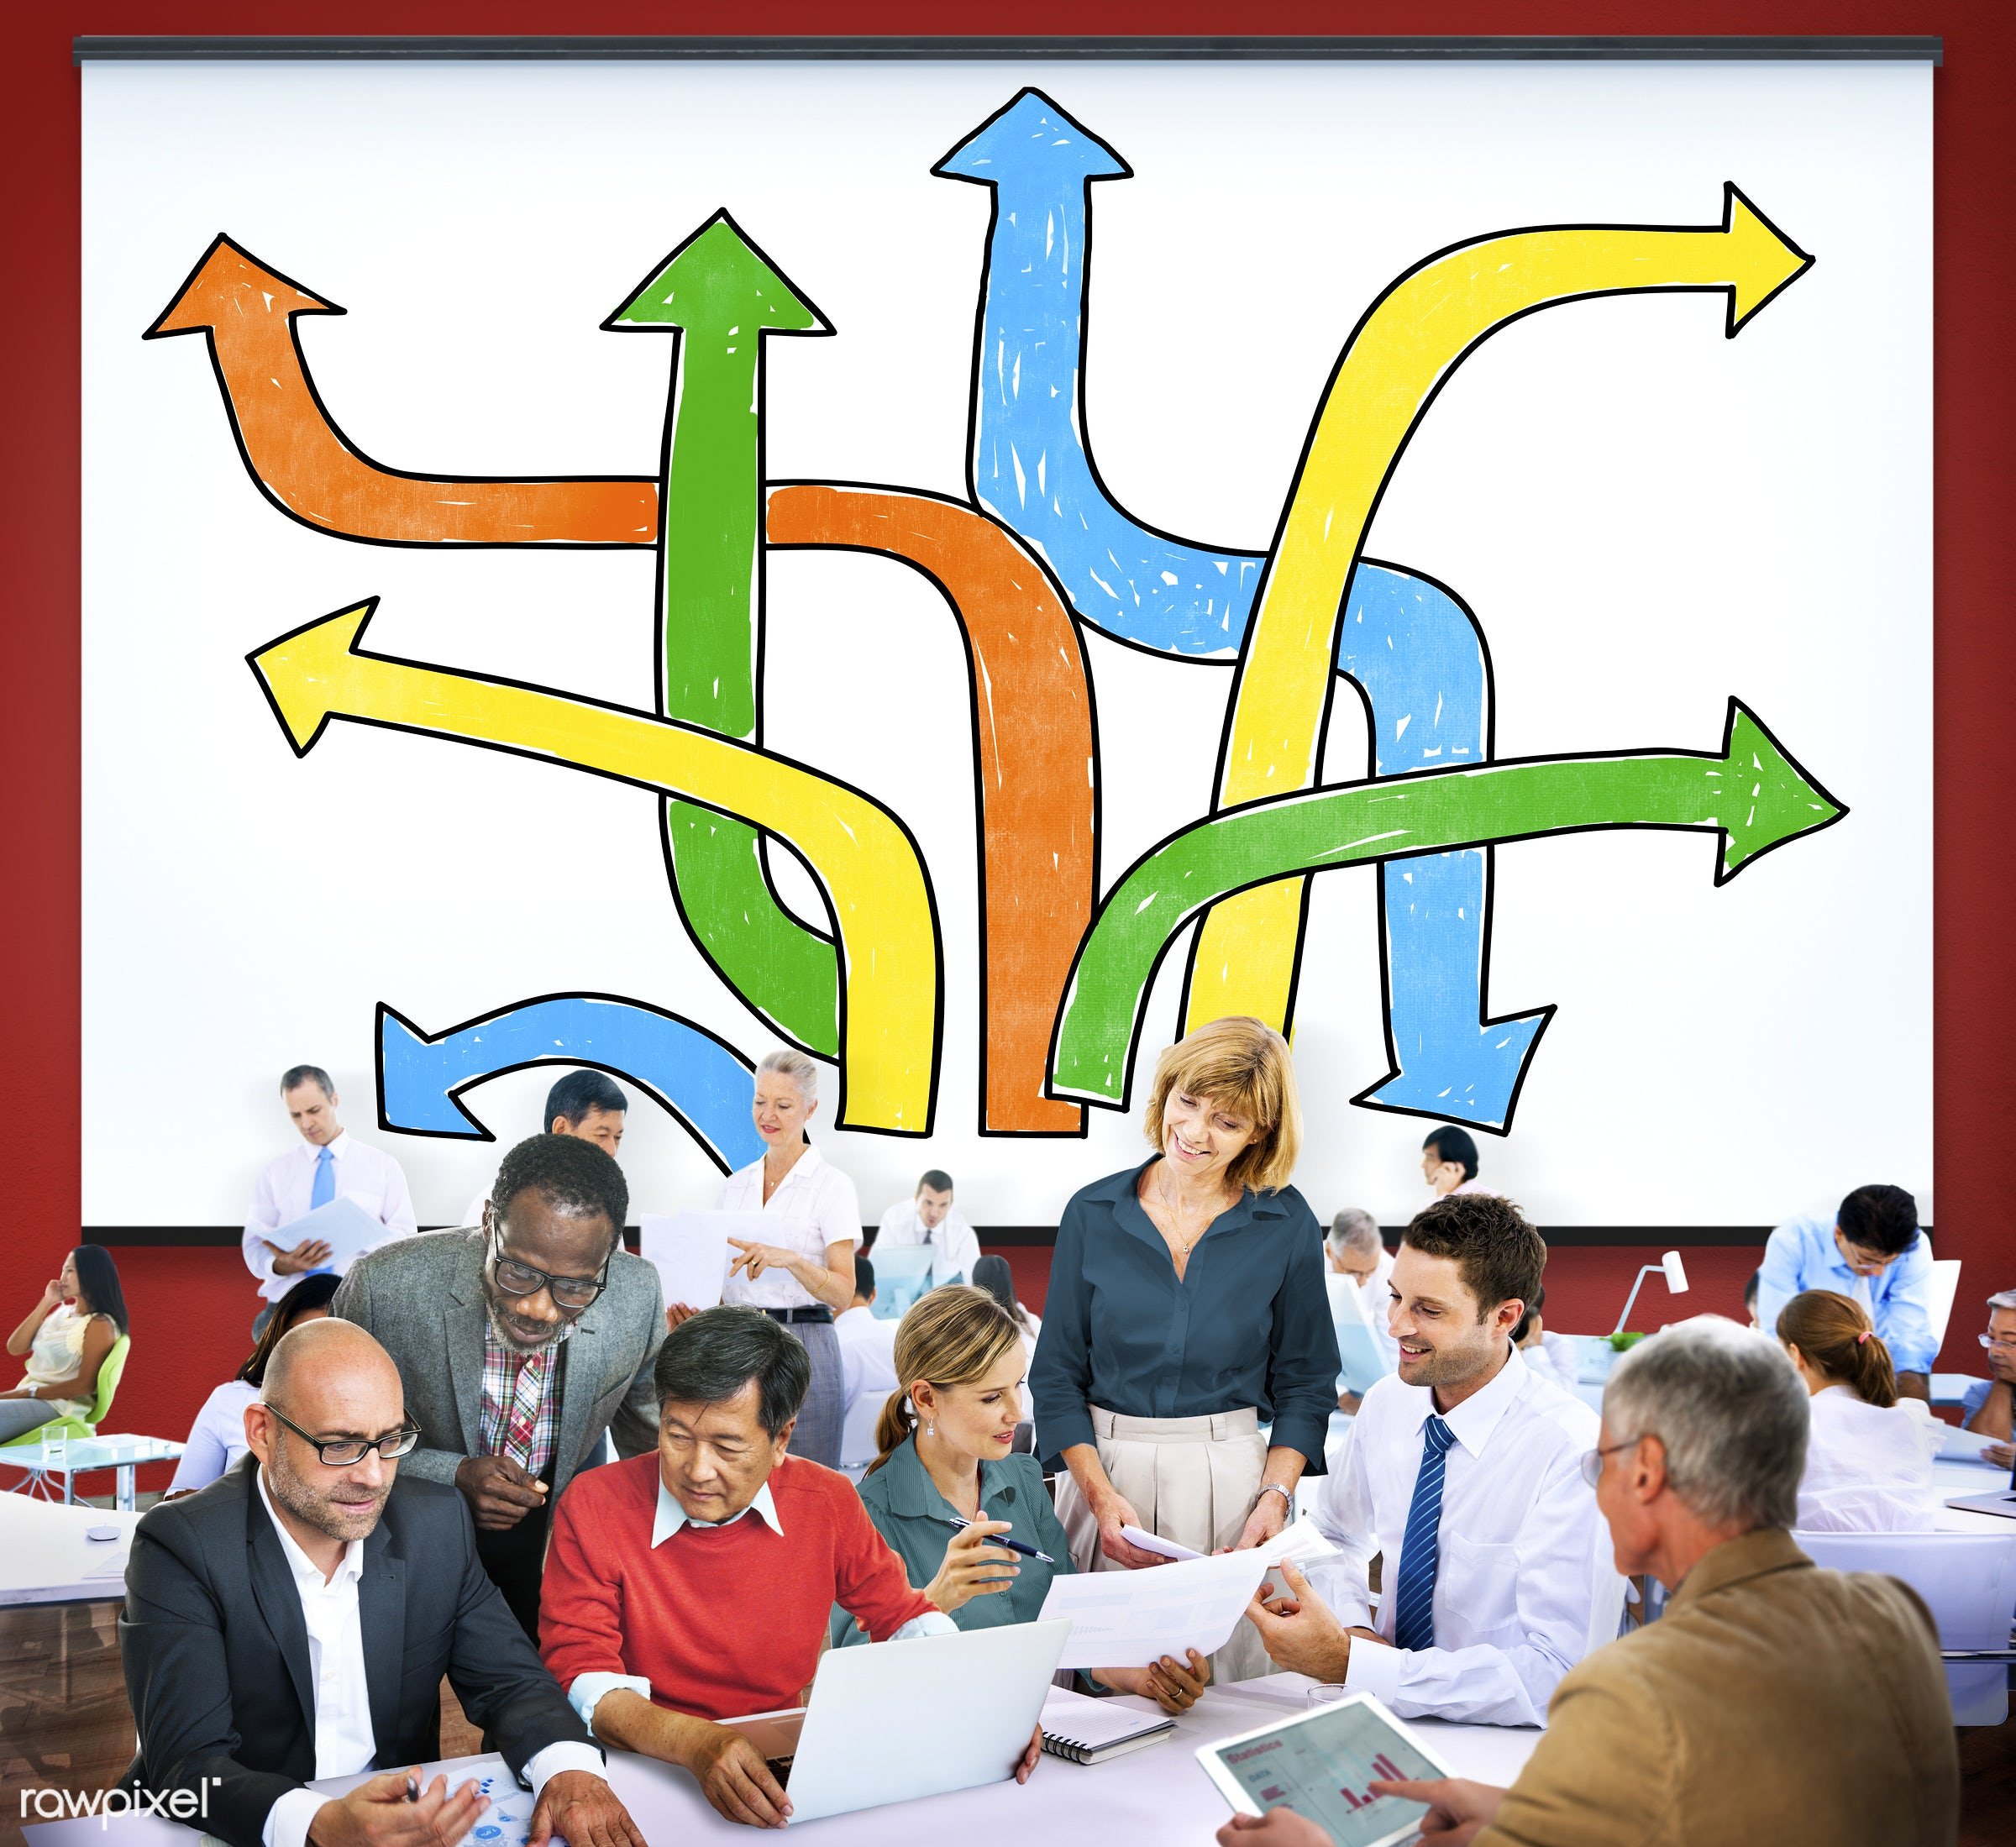 analysis, approach, arrow sign, business, business people, businessmen, businesswomen, busy, chance, change, choice,...